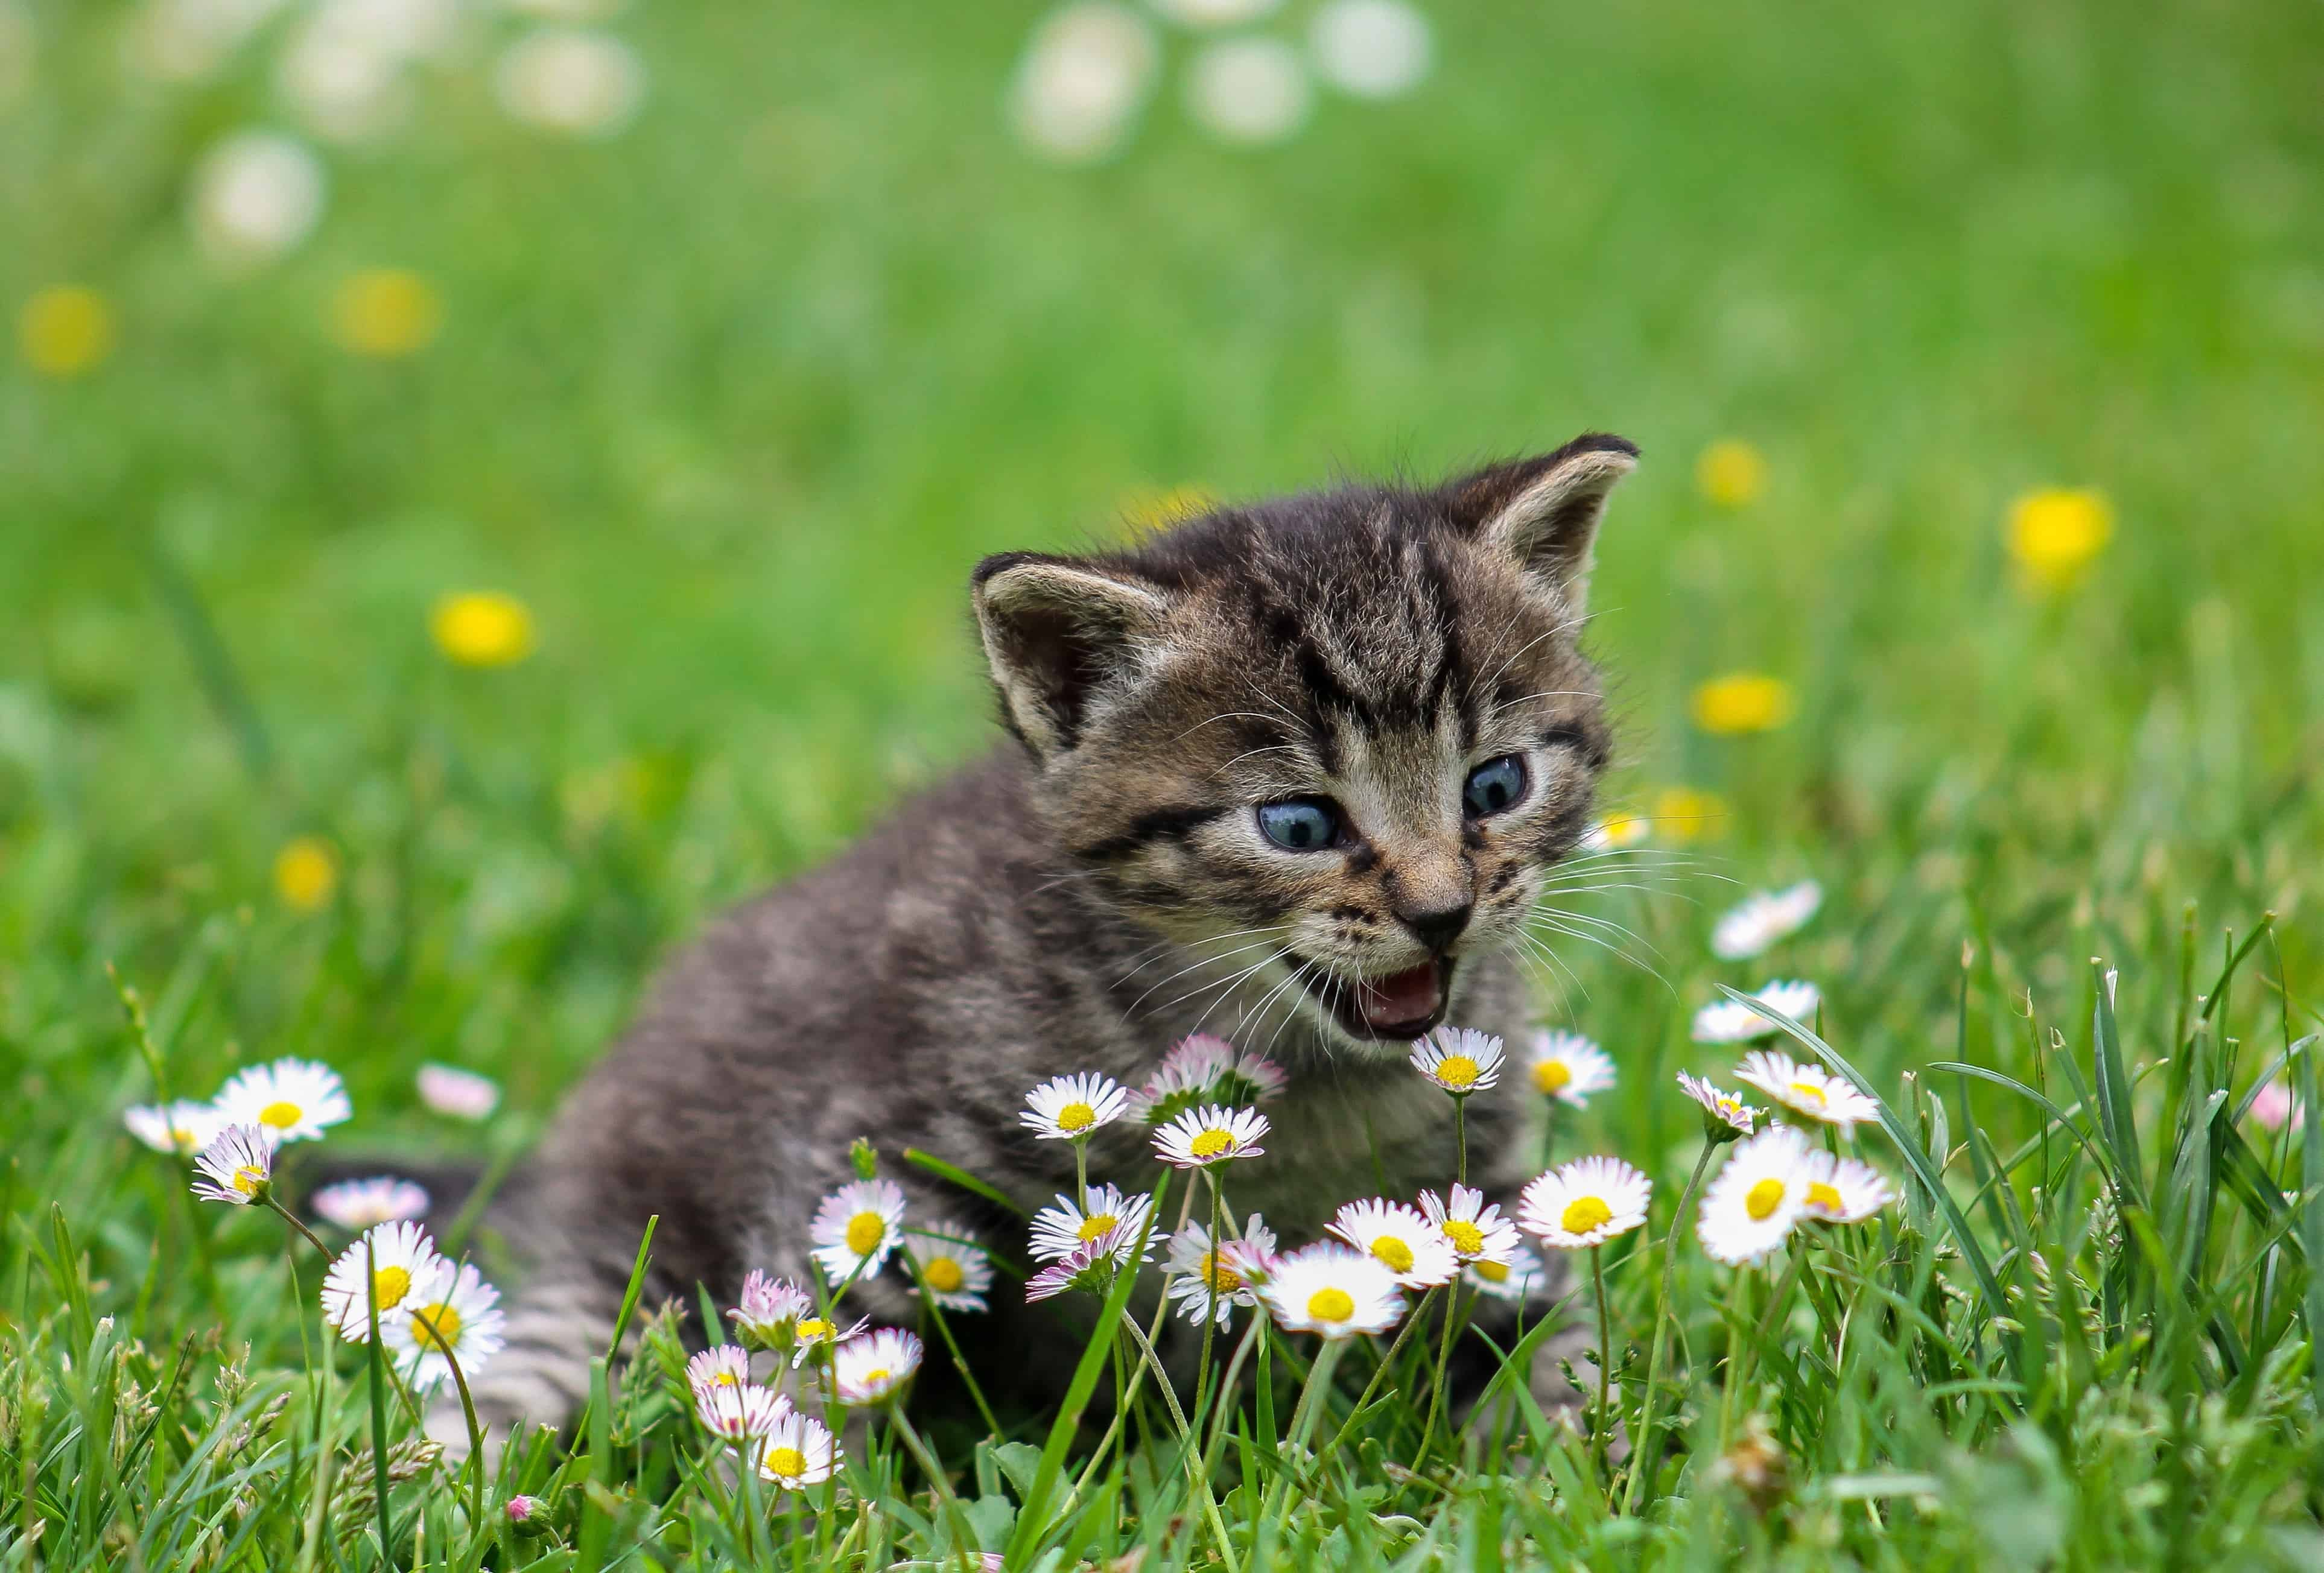 Cute Wallpapers Of Kittens And Puppies Free Picture Field Grass Cute Summer Nature Cat